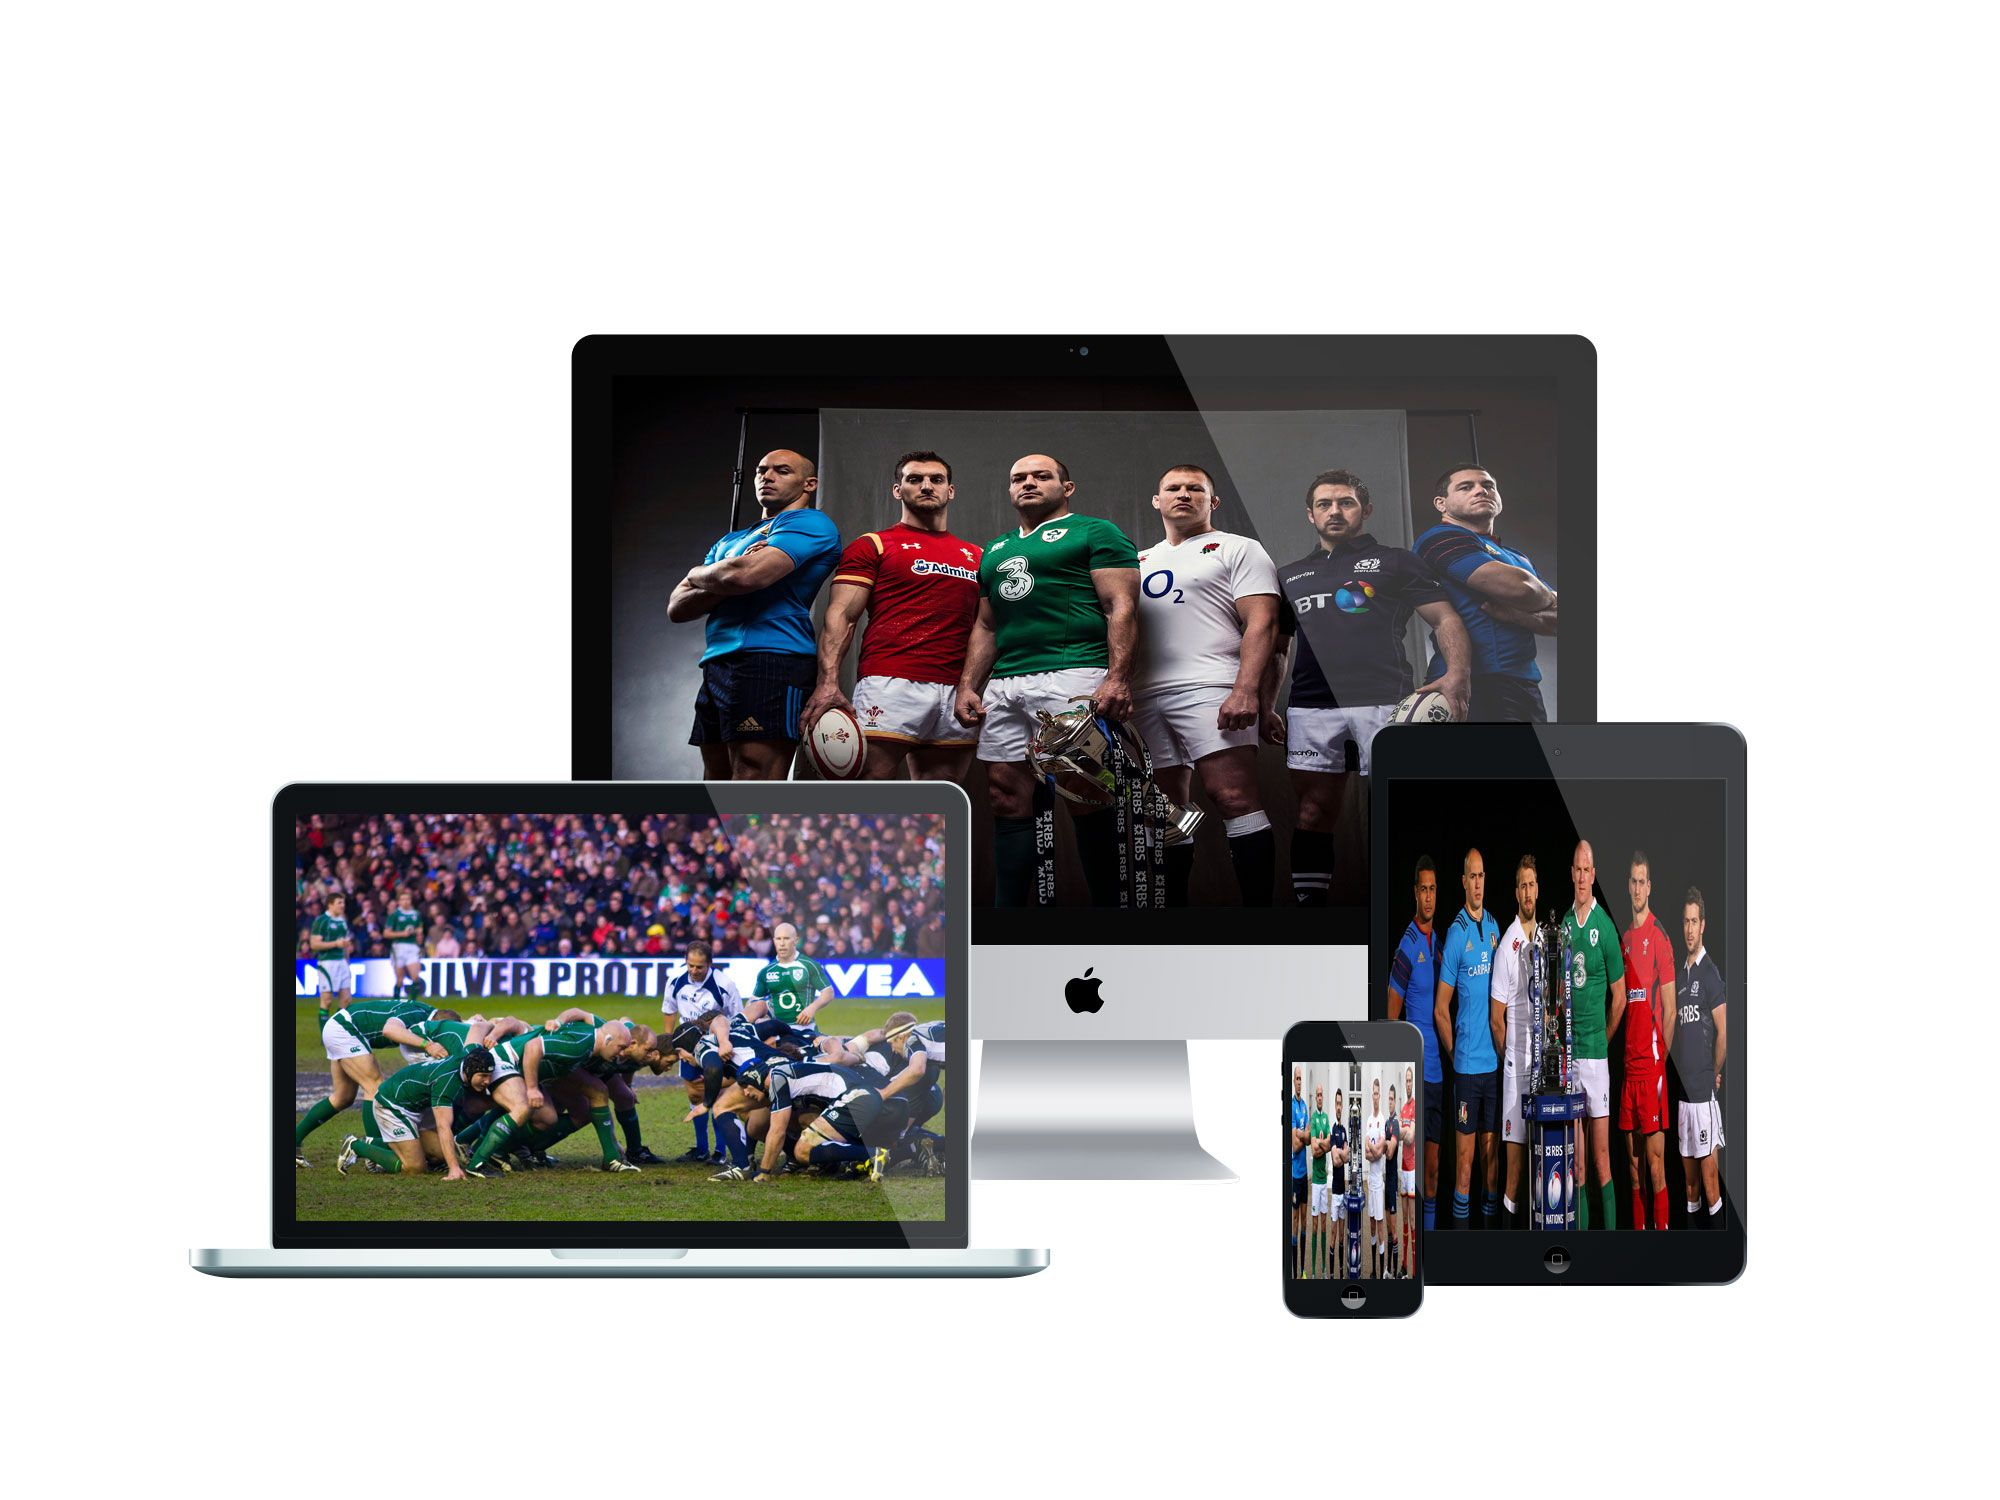 where can i watch the 6 nations online free